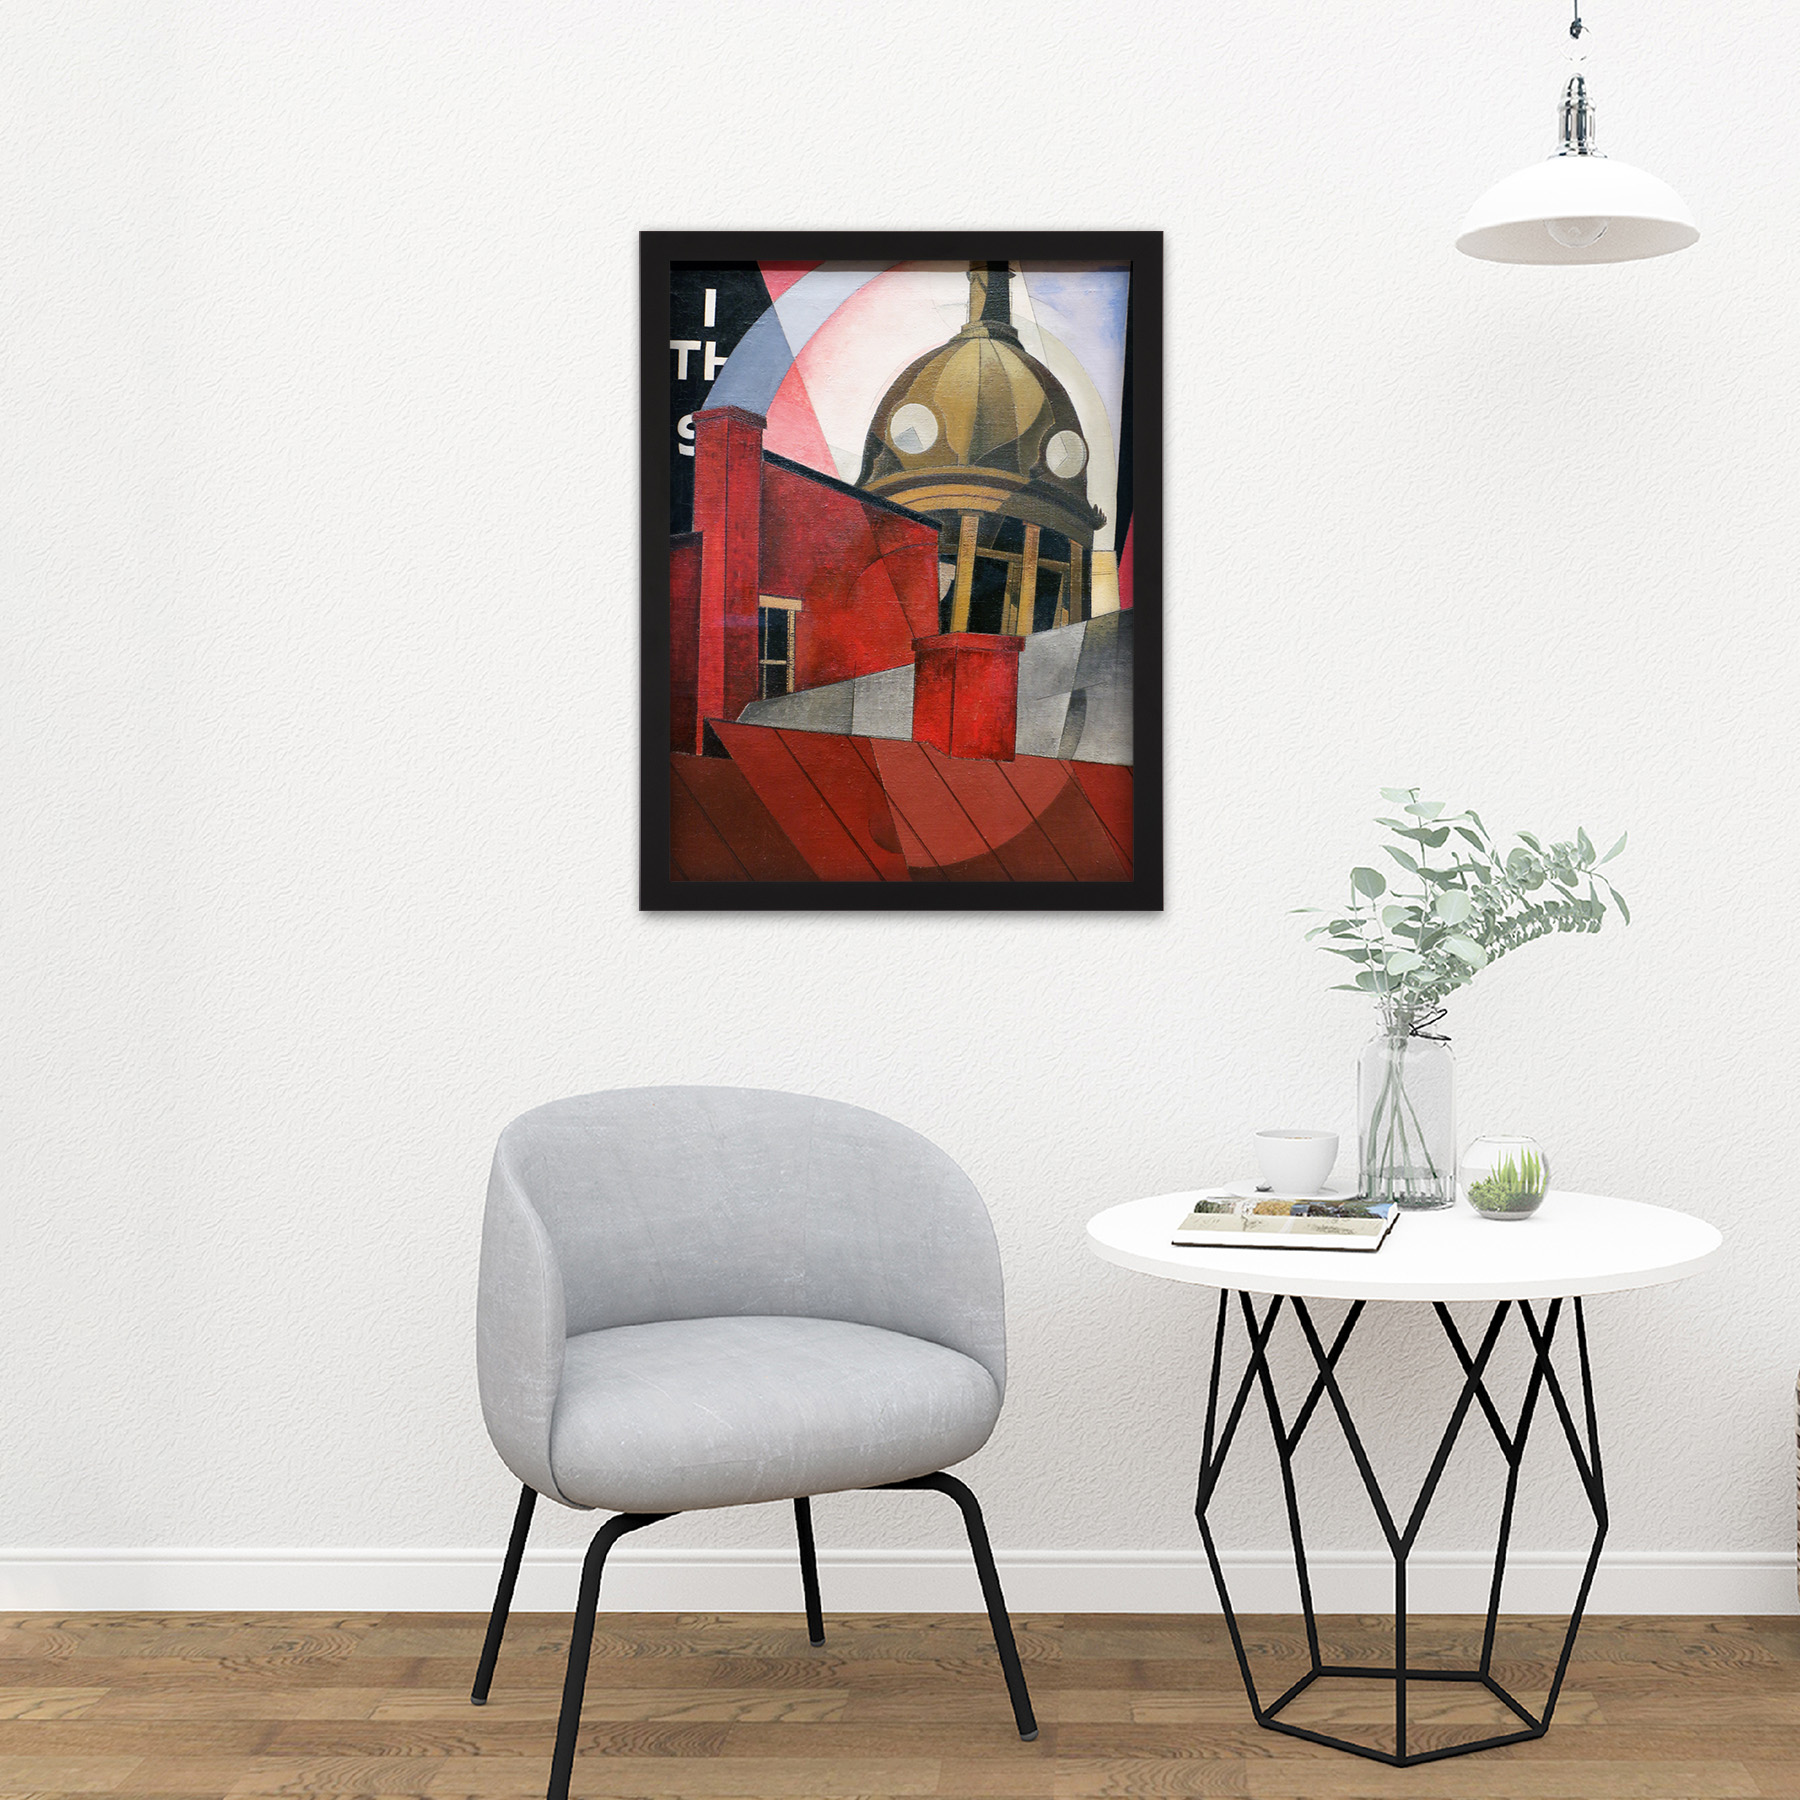 Demuth-Welcome-City-Red-Tower-Painting-Large-Framed-Art-Print thumbnail 8